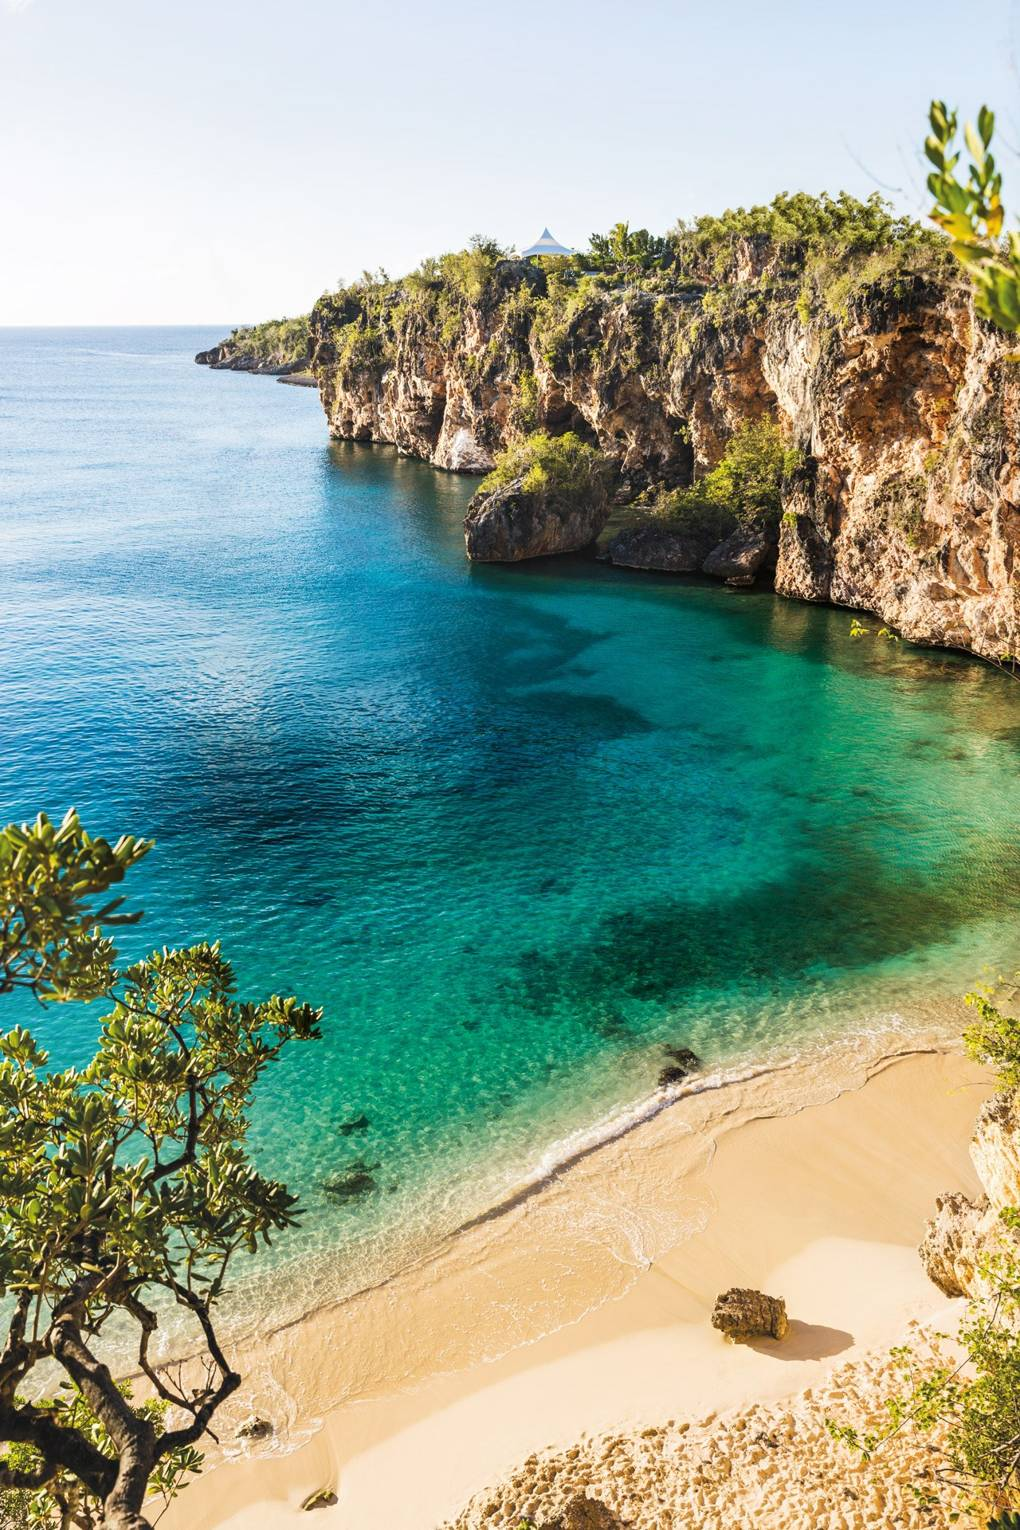 Anguilla – best beaches in the Caribbean | CN Traveller on map of central america beaches, map of mexico beaches, map of best beaches, map of south america beaches, map of trinidad and tobago beaches, map of fiji island beaches, map of santo domingo beaches, map of beaches in nj, map of martinique beaches, map of haiti beaches, map of bermuda beaches, map of germany beaches, map of vietnam beaches, map of denmark beaches, map of the dominican republic beaches, map of bali beaches, map of st thomas usvi beaches, map of georgia beaches, map of thailand beaches,